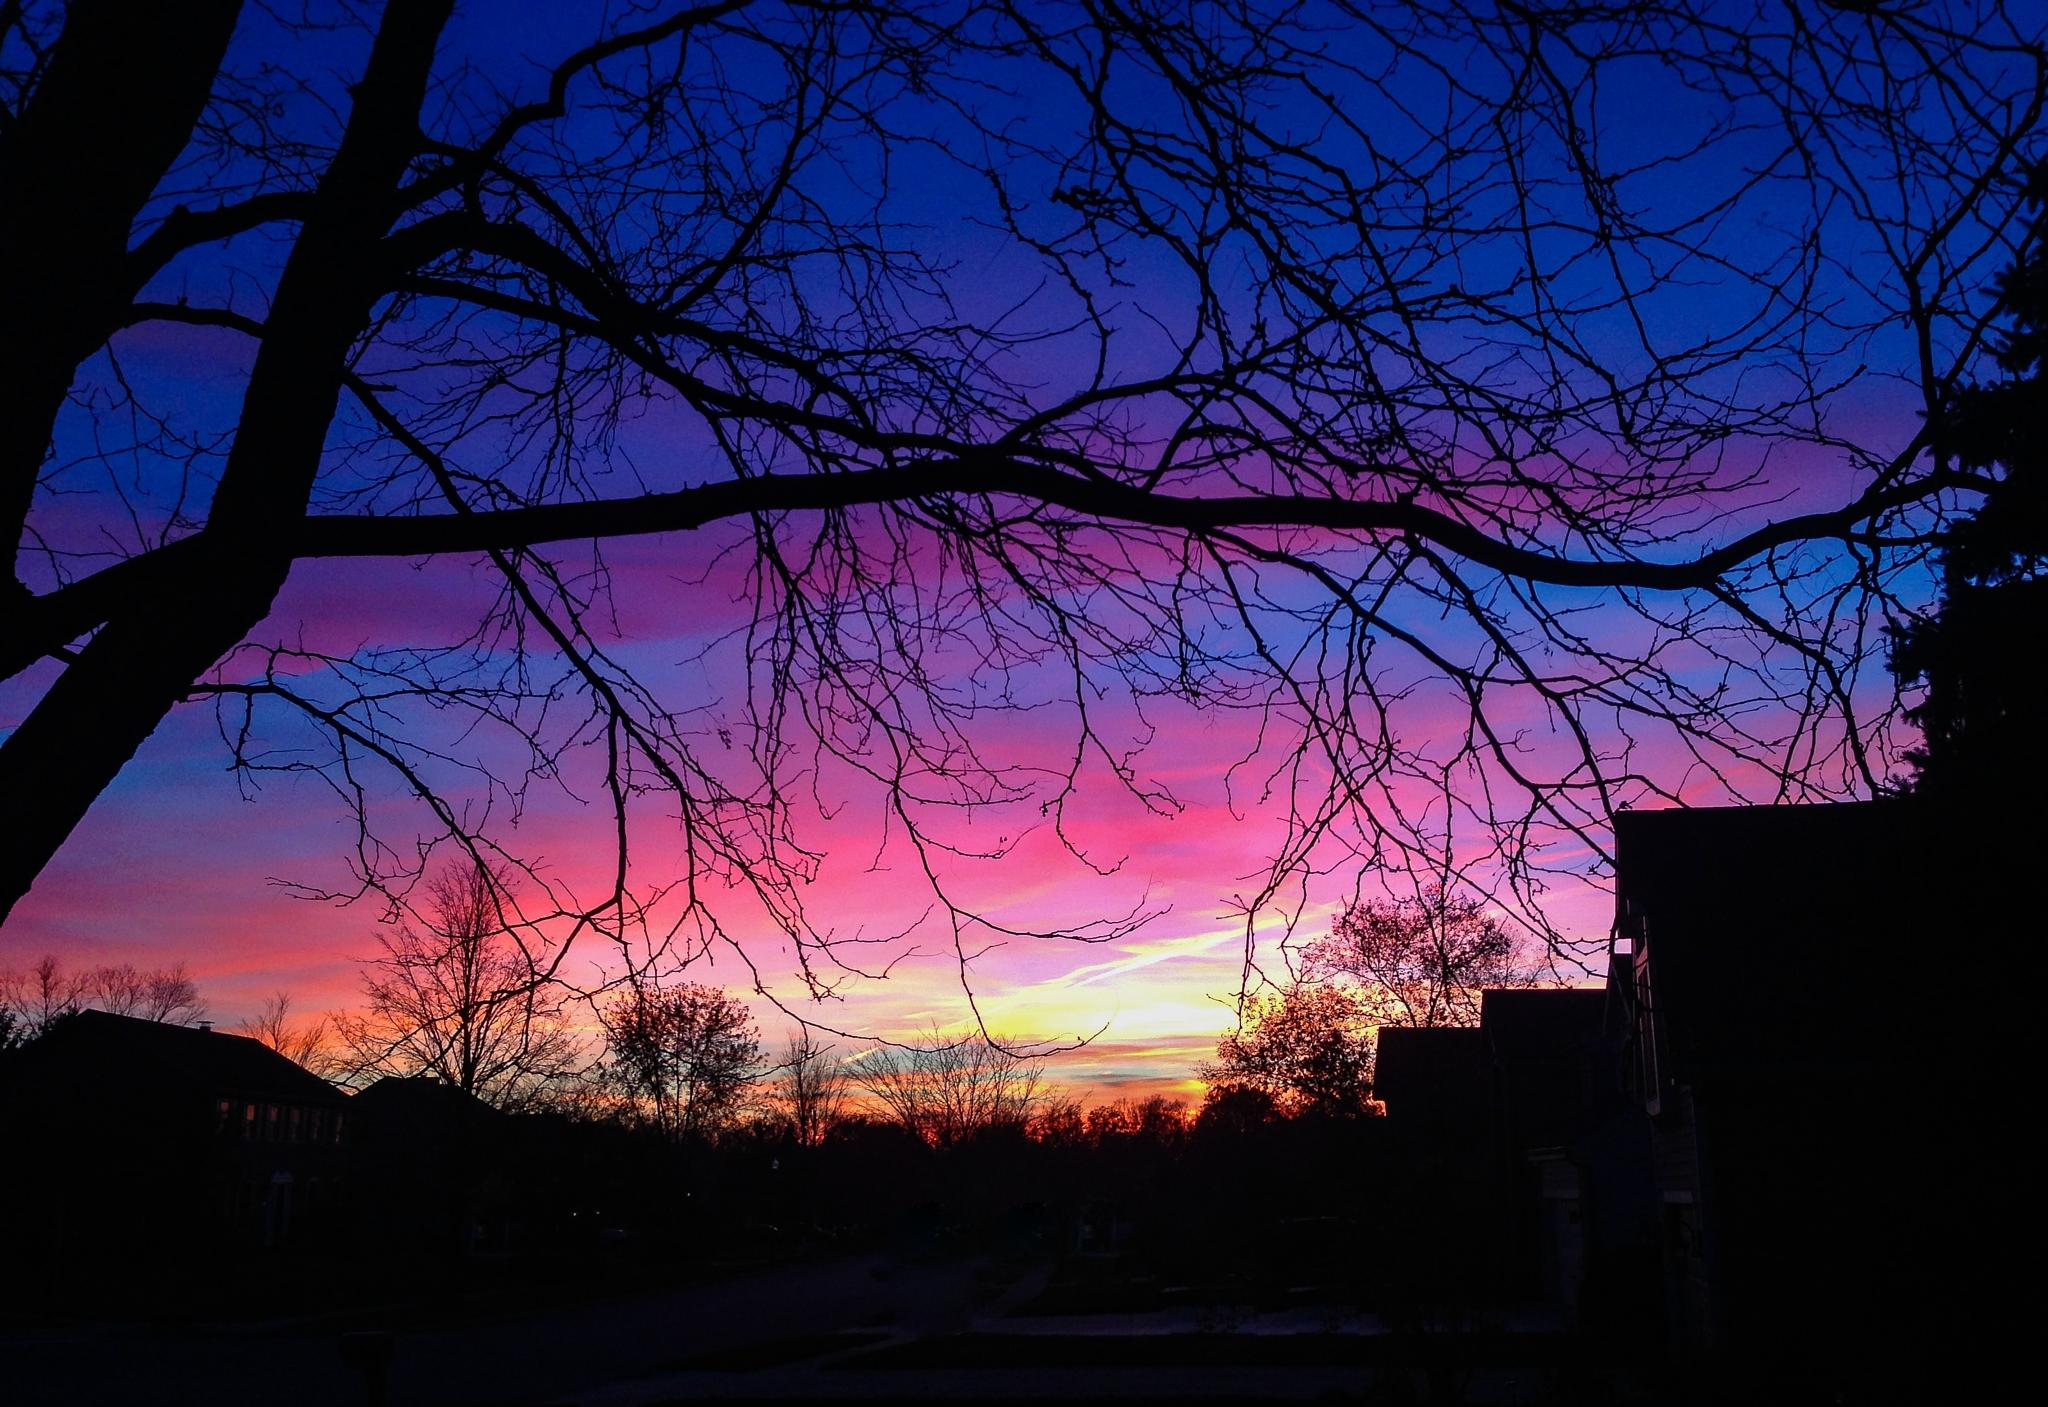 Sunset In Pink and Blue by lori.collinsherrmann